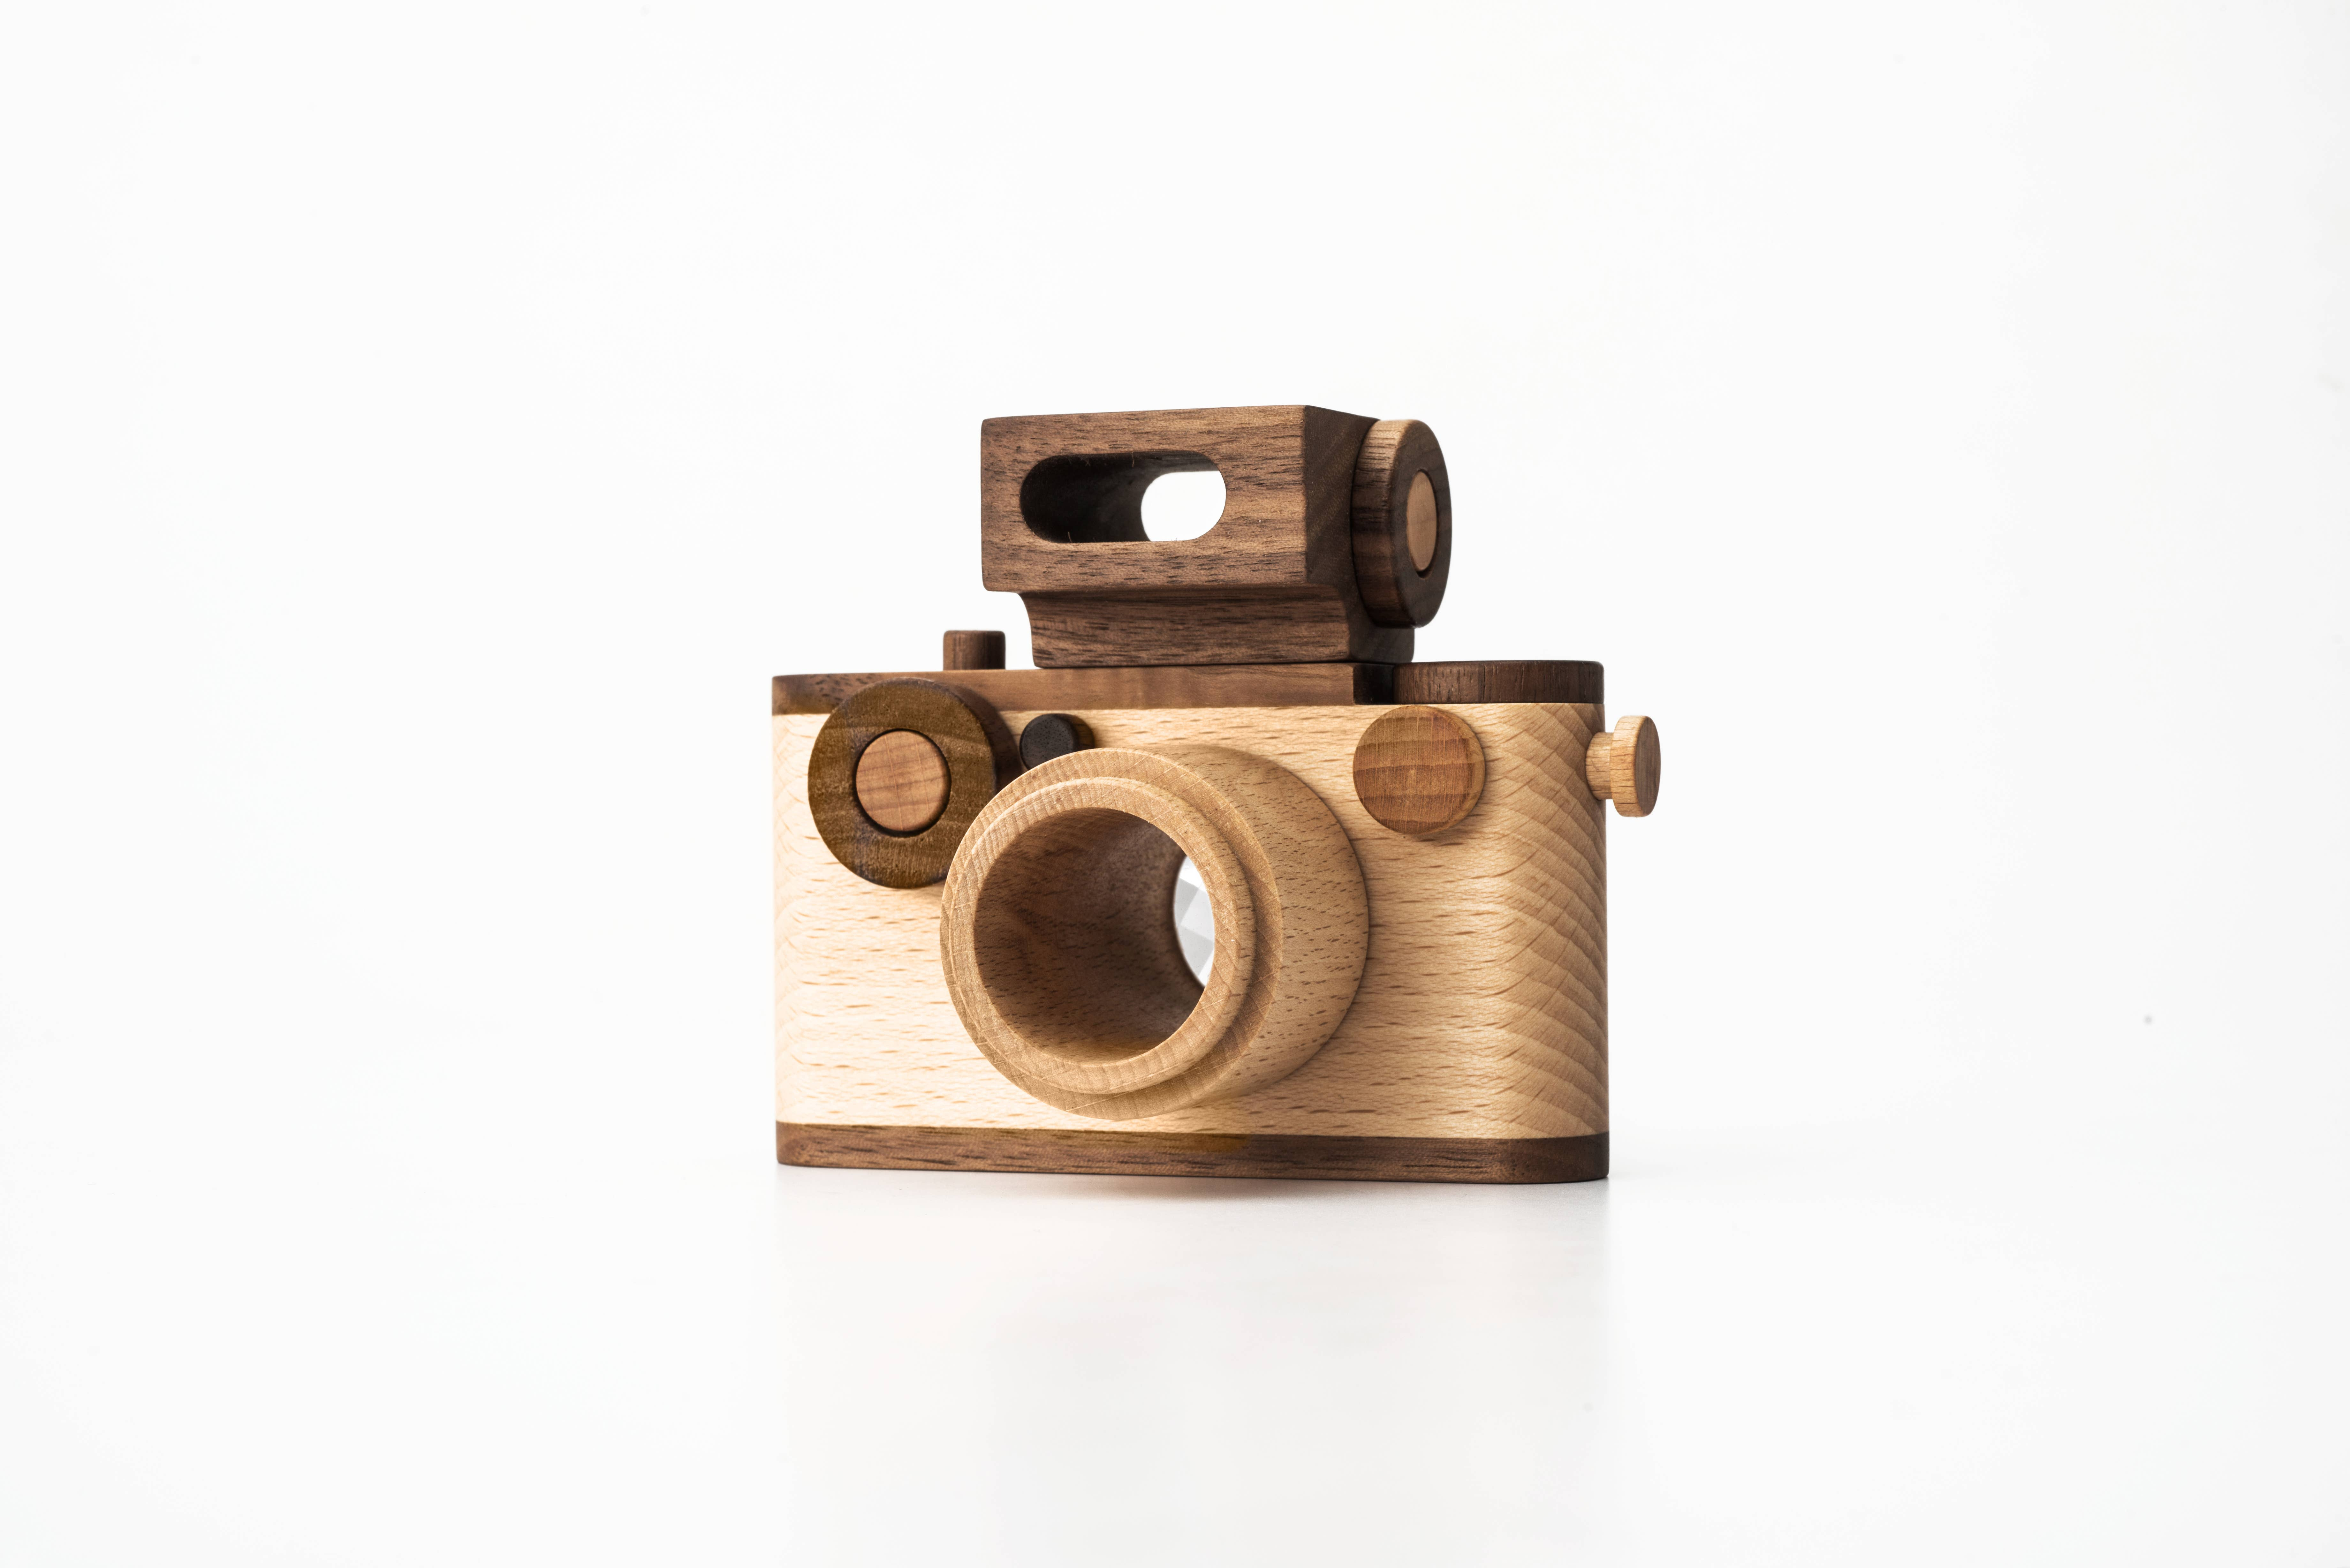 35MM Vintage Style Wooden Toy Camera   Trada Marketplace